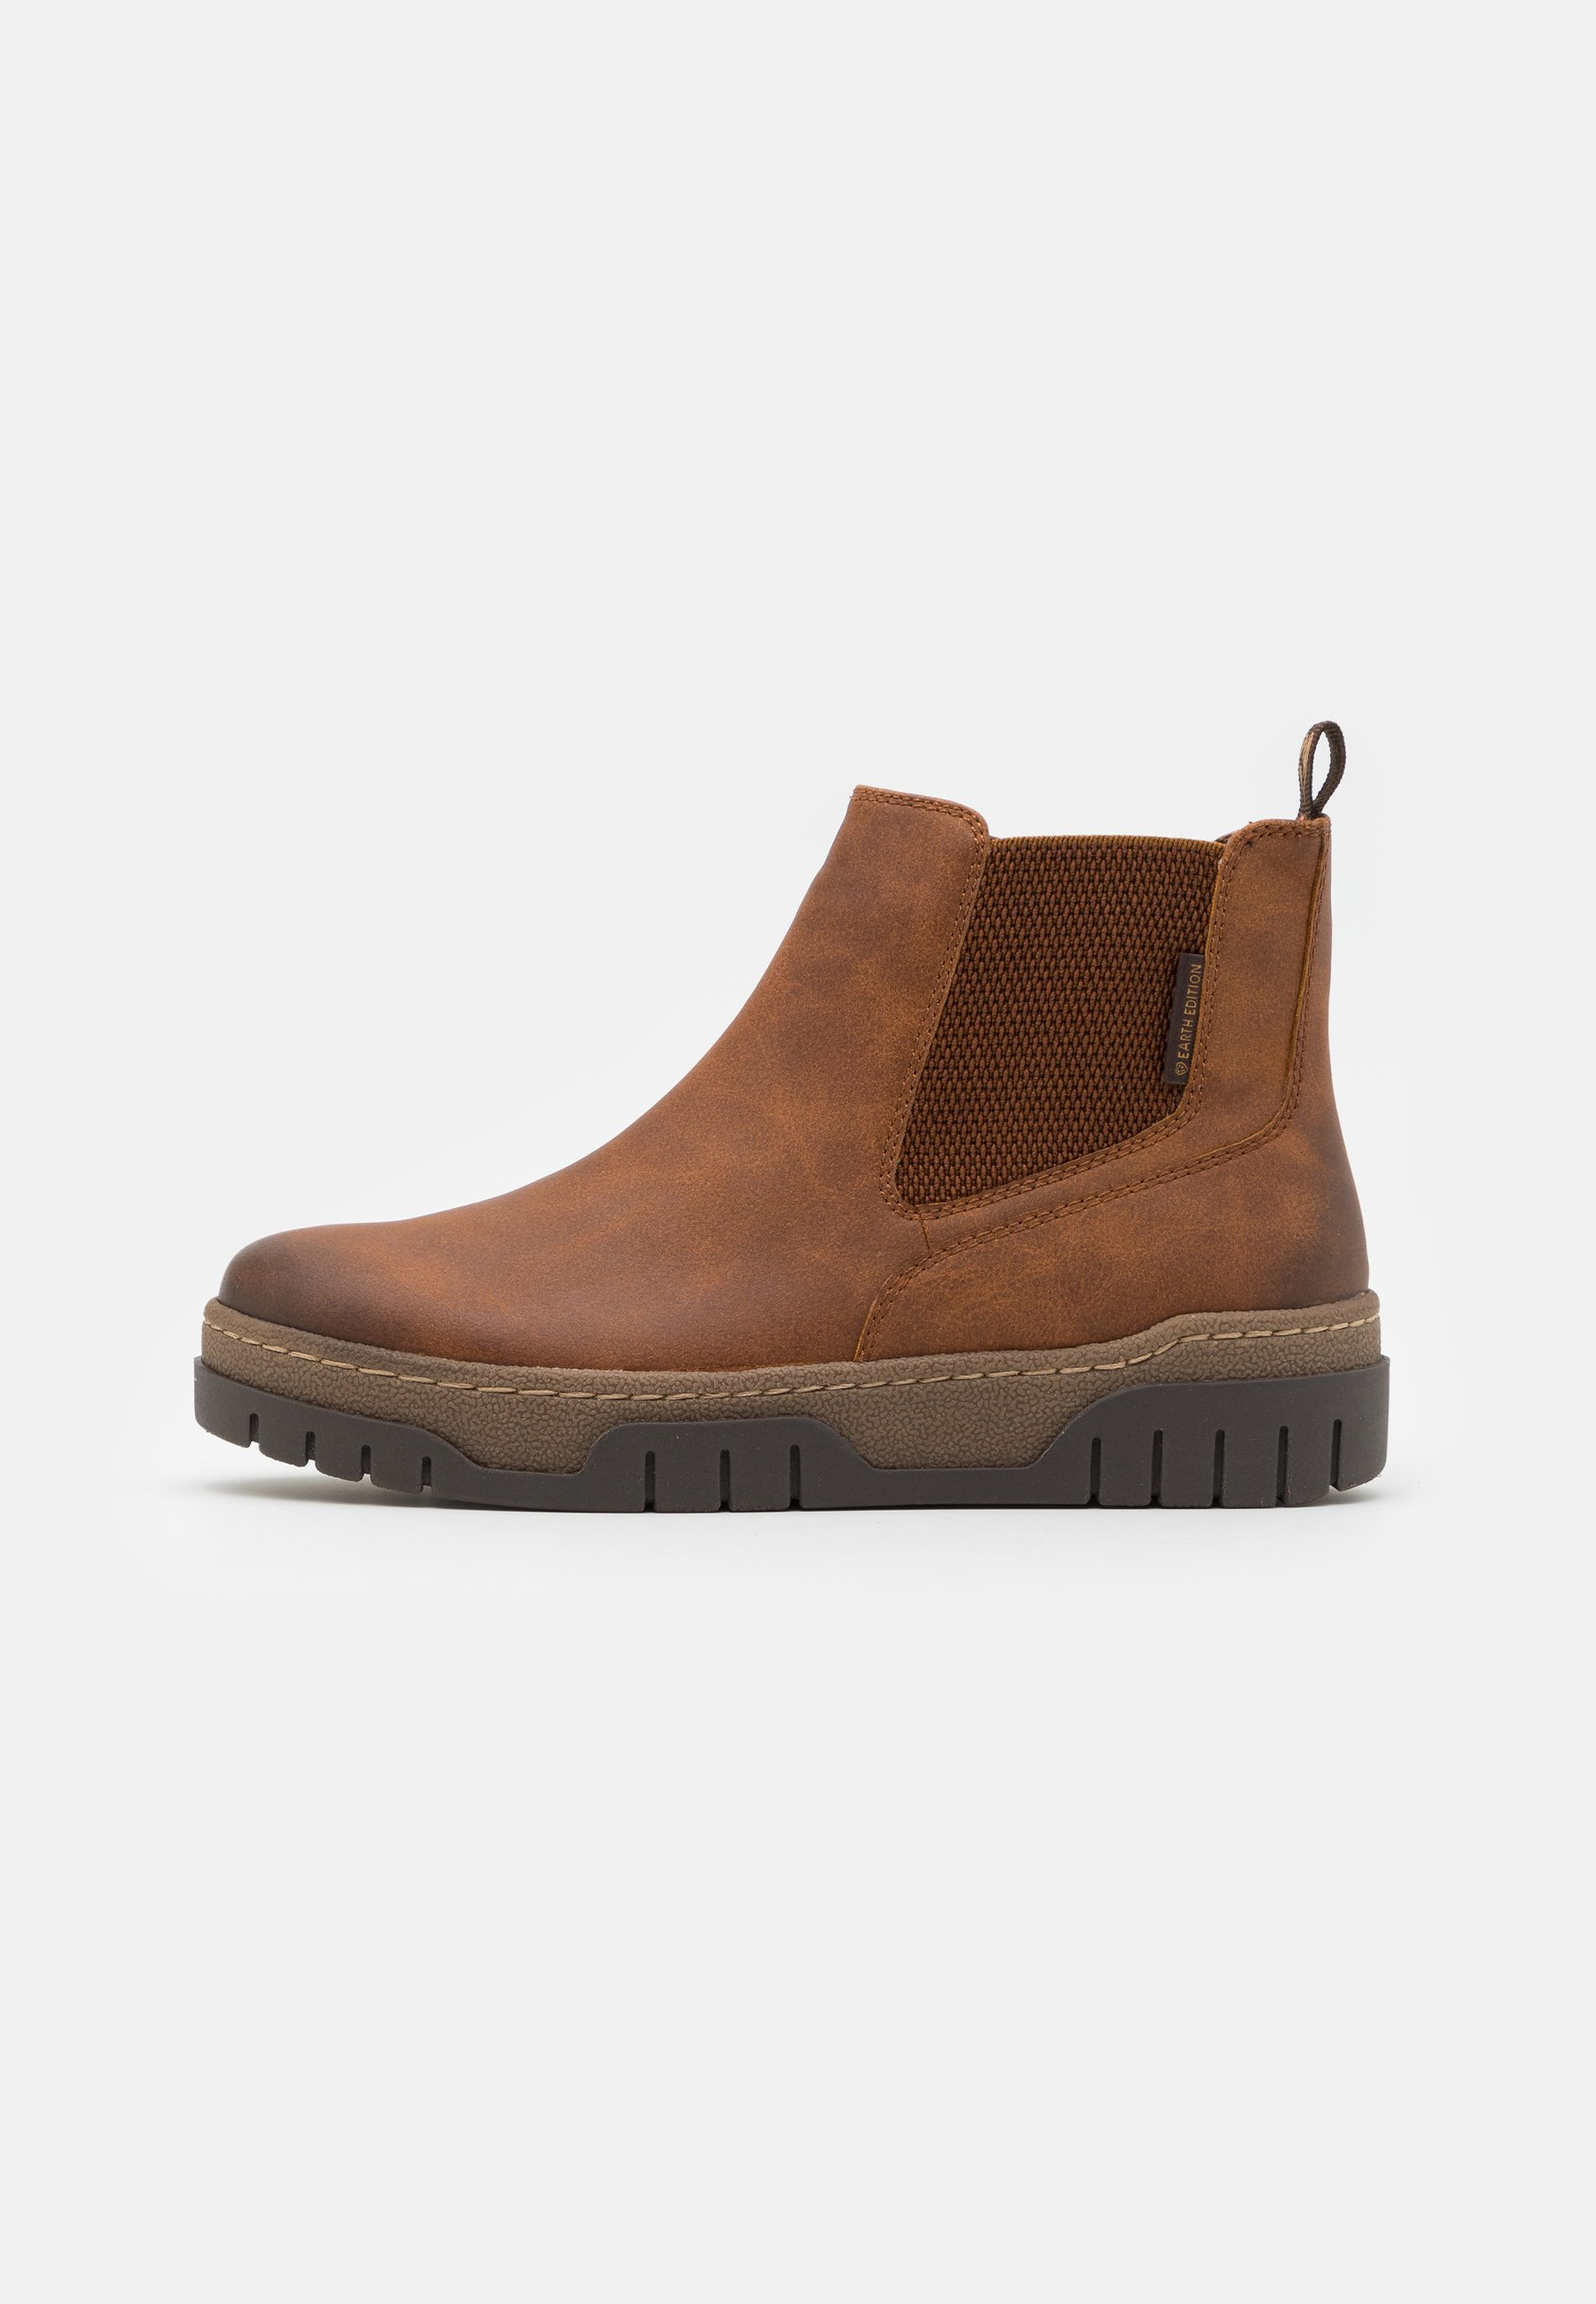 Love Our Planet By Marco Tozzi Ankle Boot - Cognac/cognac